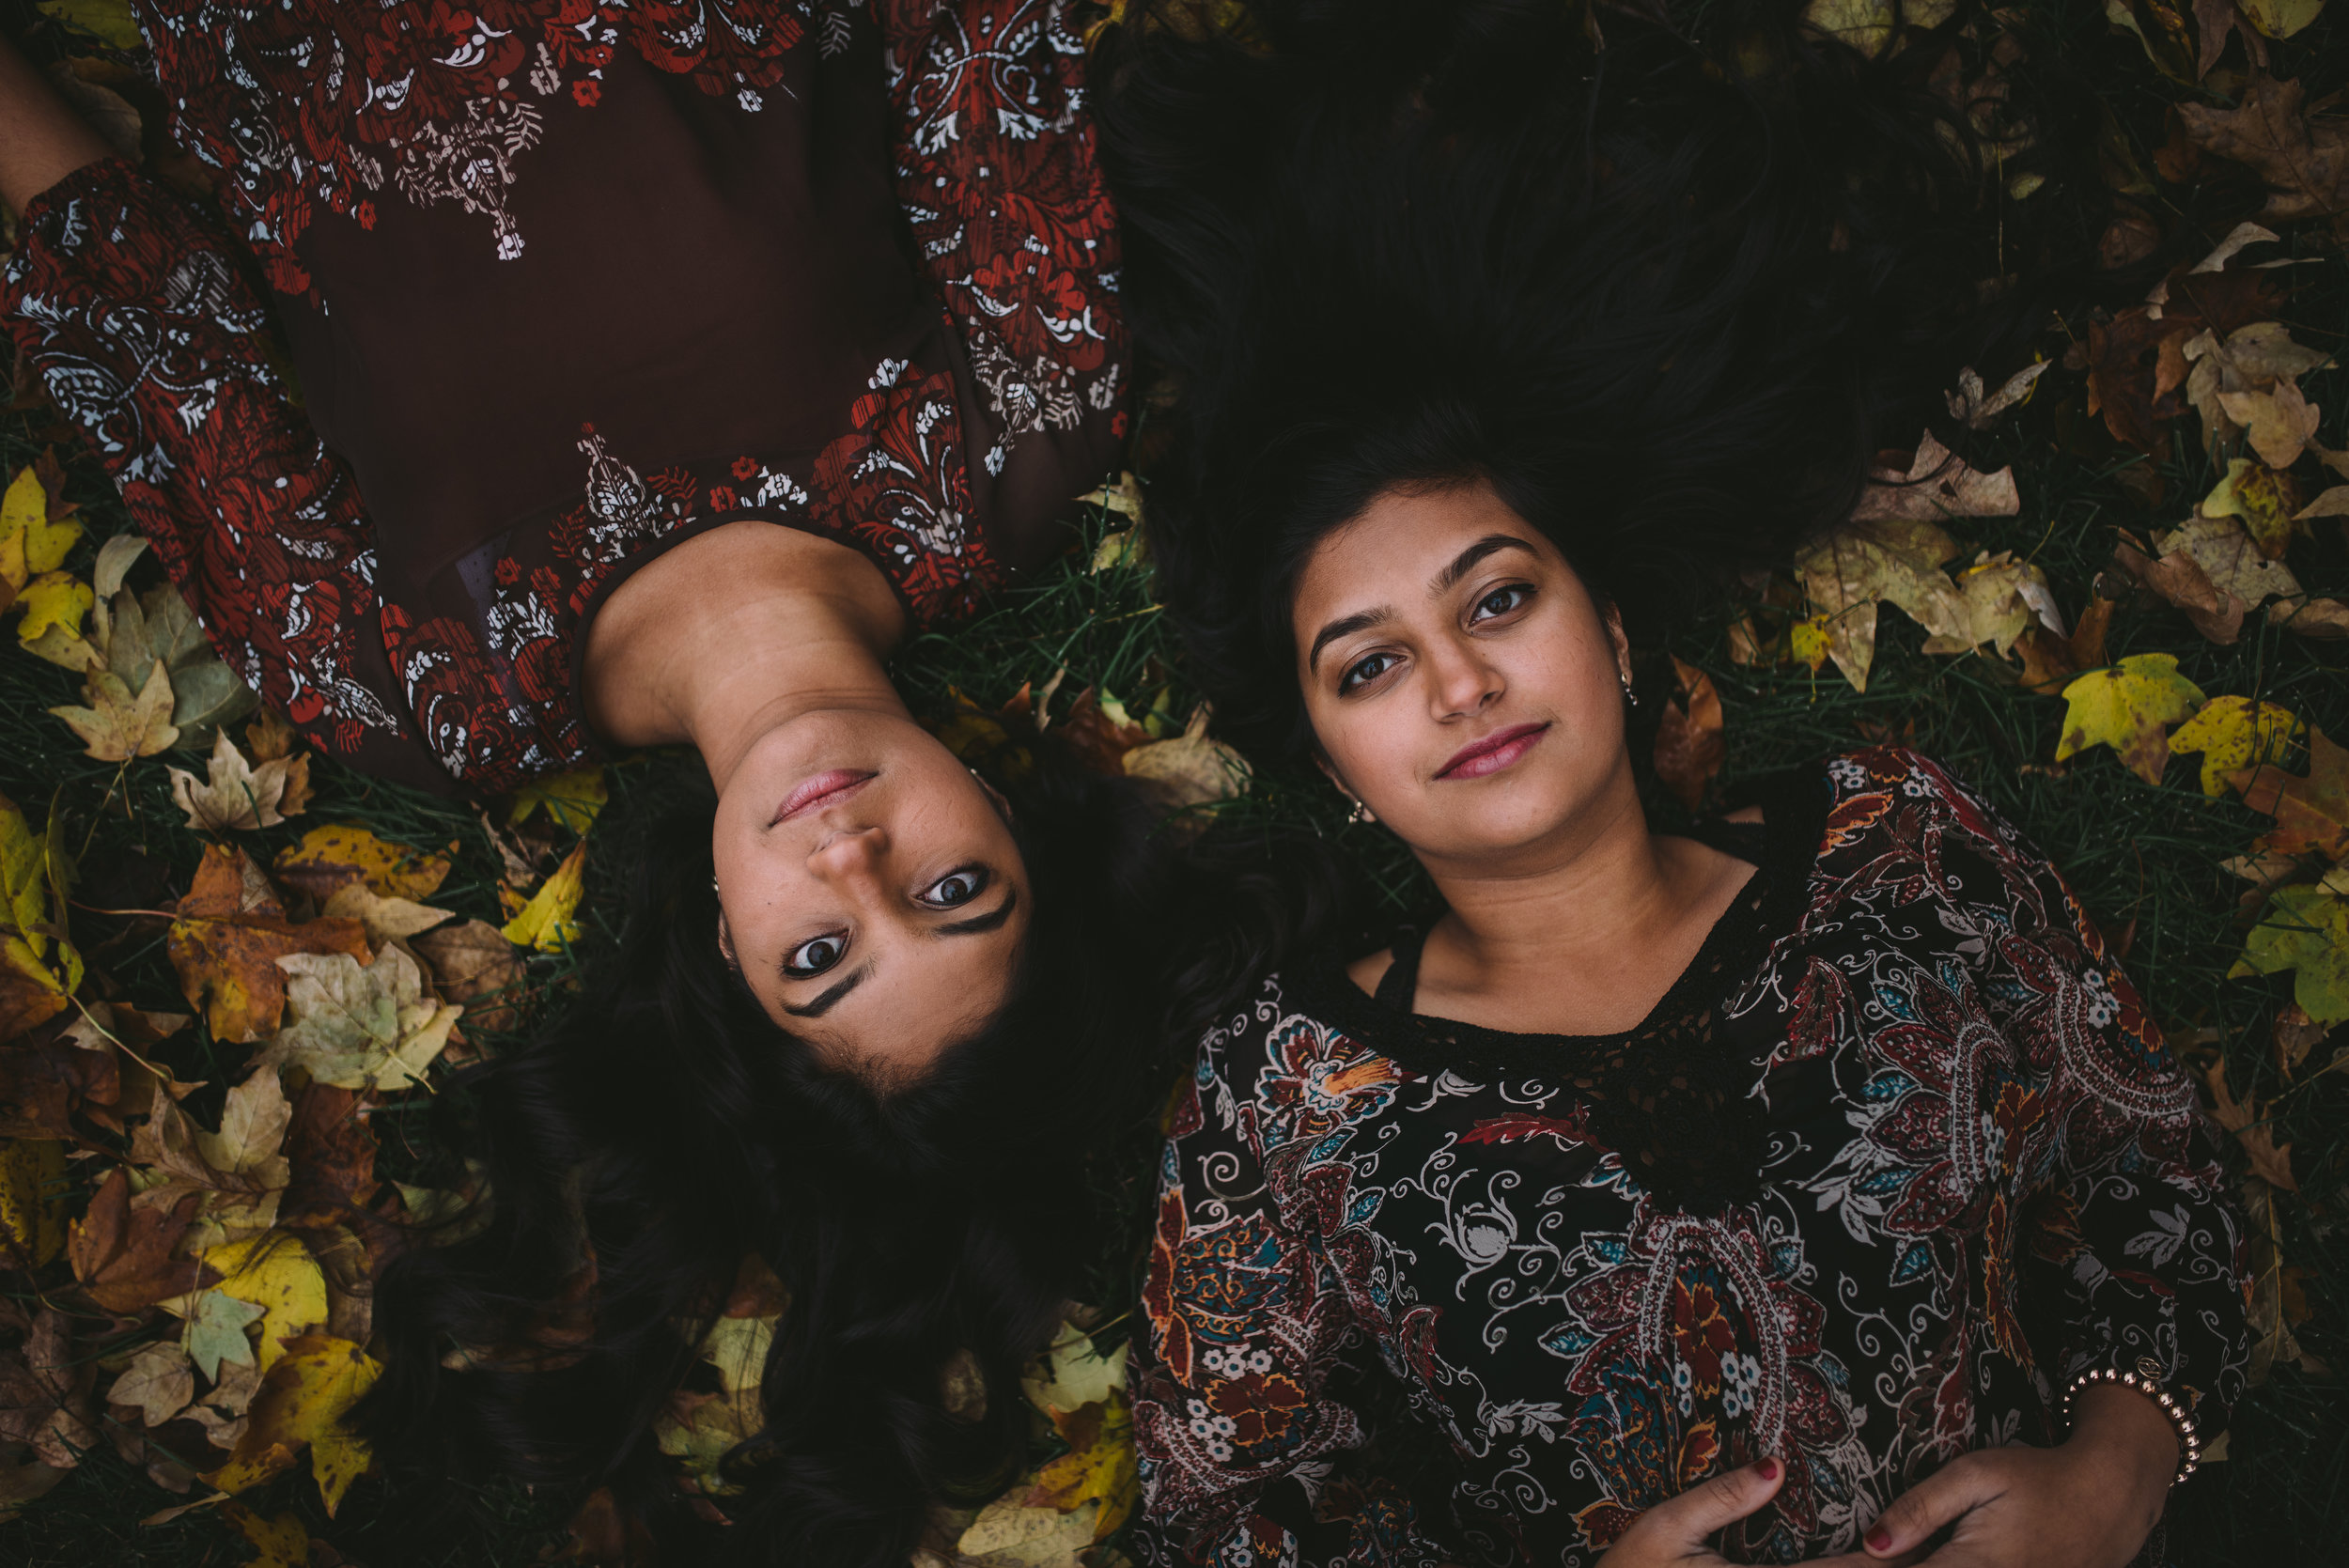 Nisha&Nitika_SeniorMini1_Senior Photography In Tempe_ArizonaPortraitPhotographer_SamanthaRosePhotography_-5.jpg